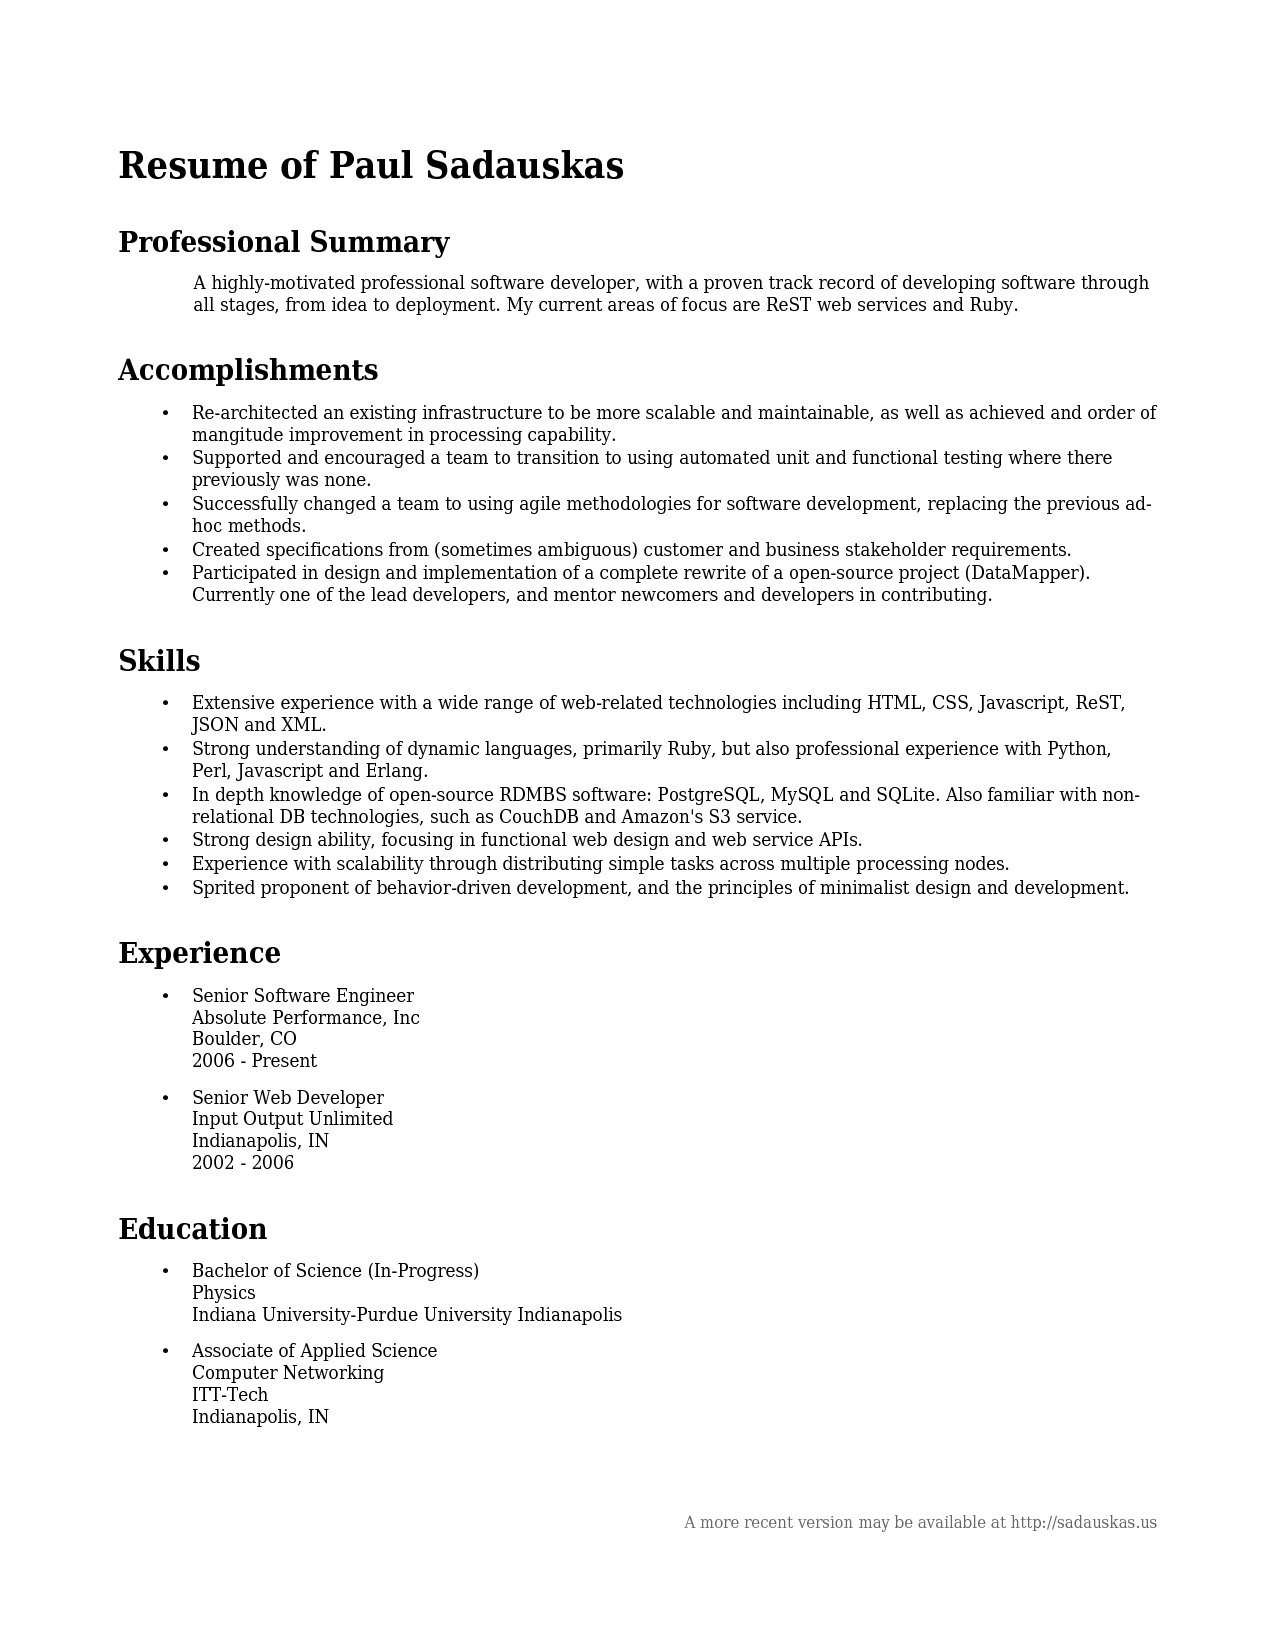 Professional Examples Of Resumes Professional Resume Summary 2016 Samplebusinessresume